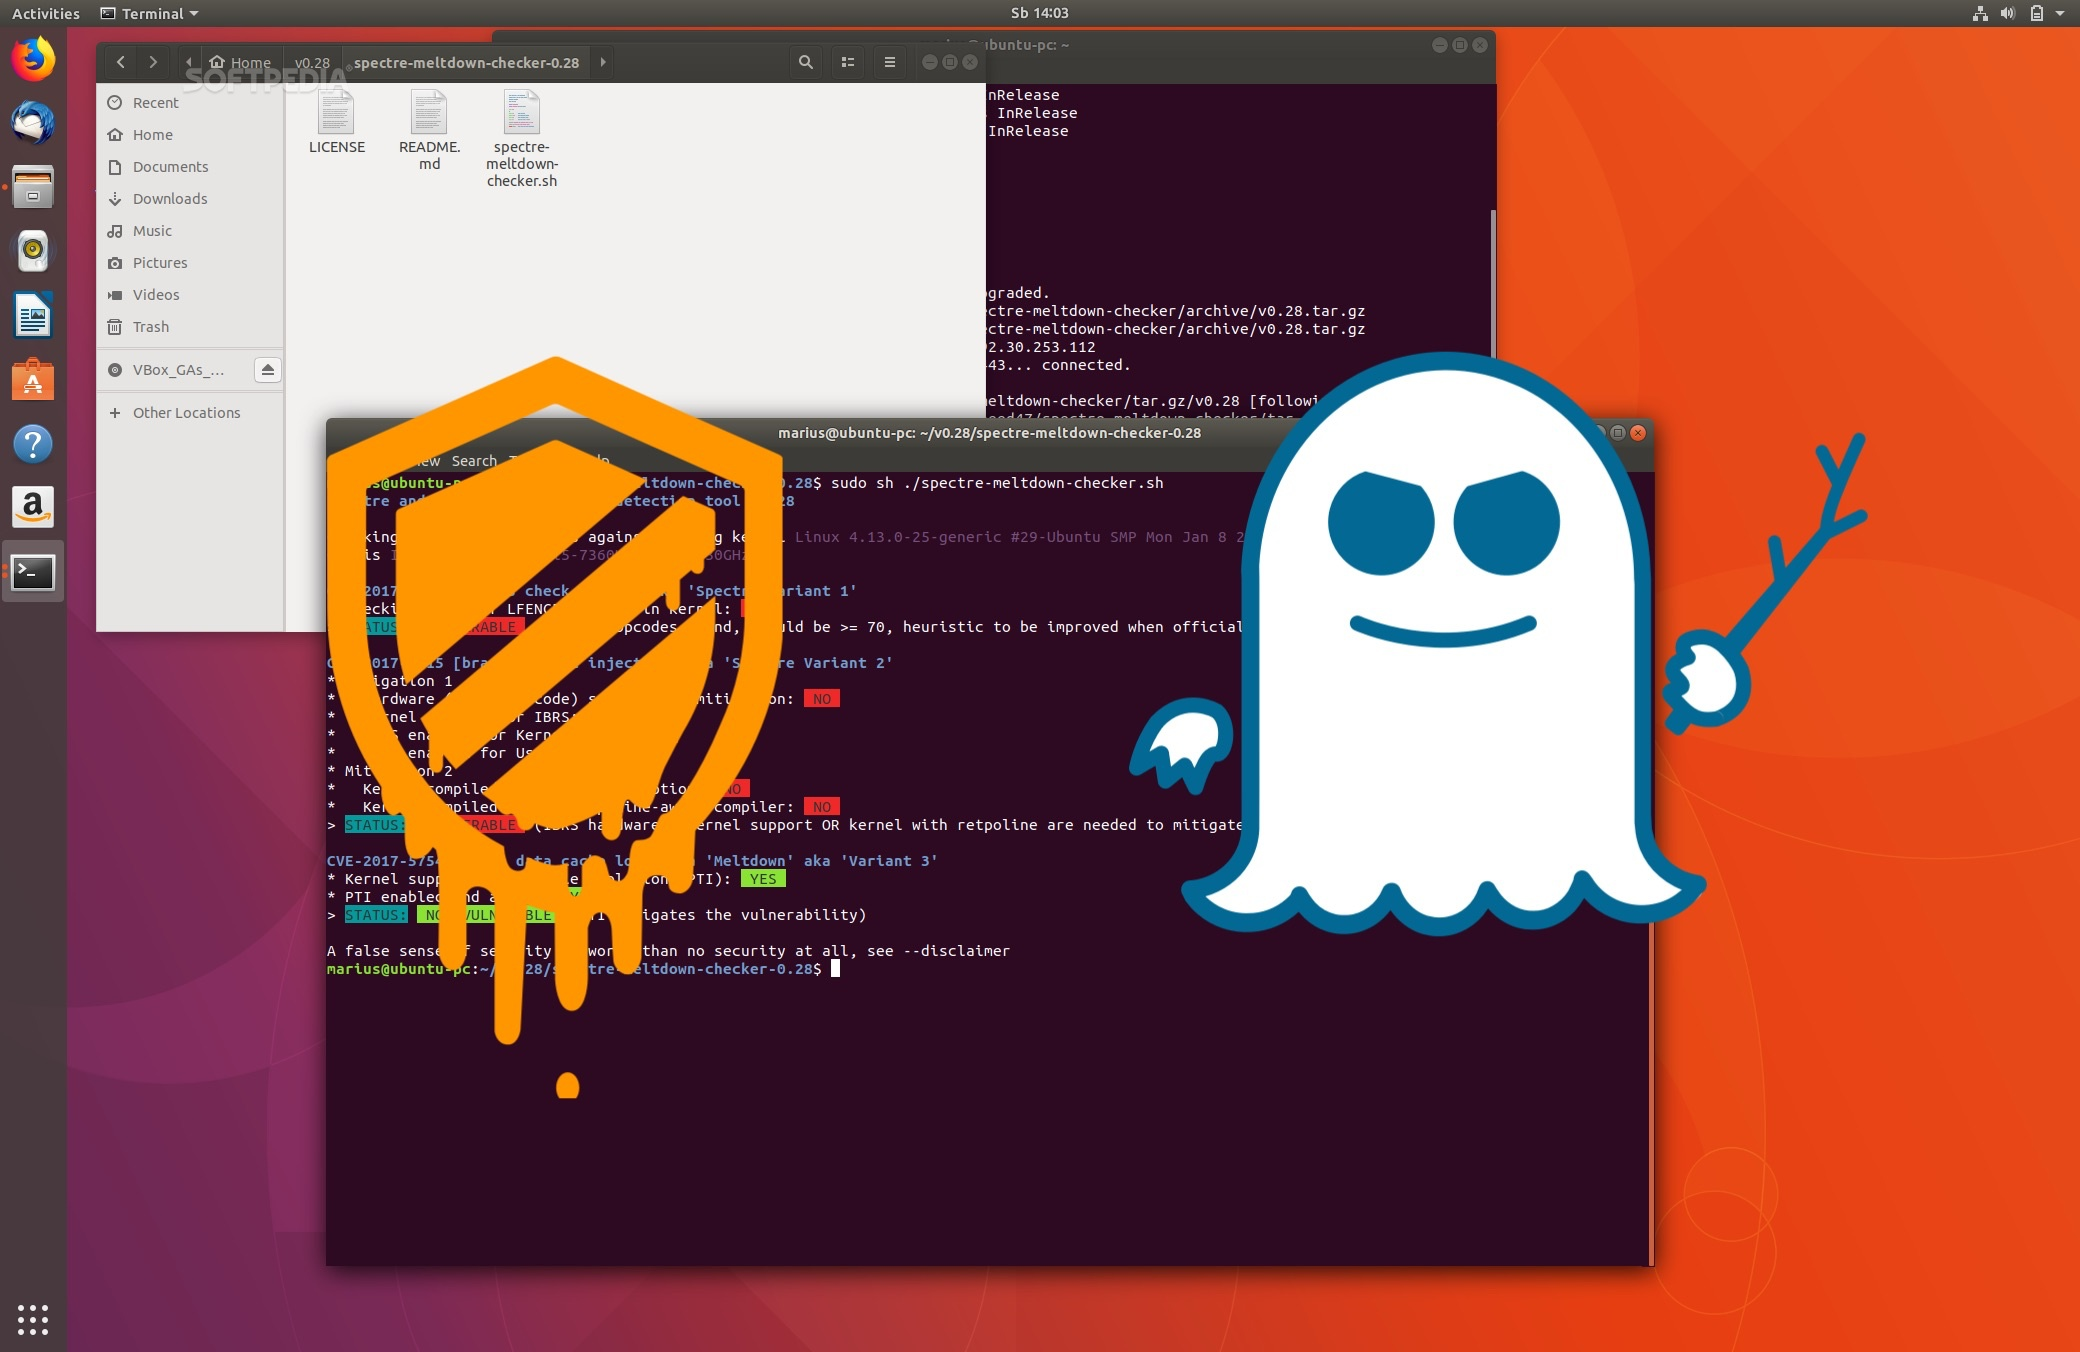 How to Check If Your Linux PC Is Vulnerable to Meltdown